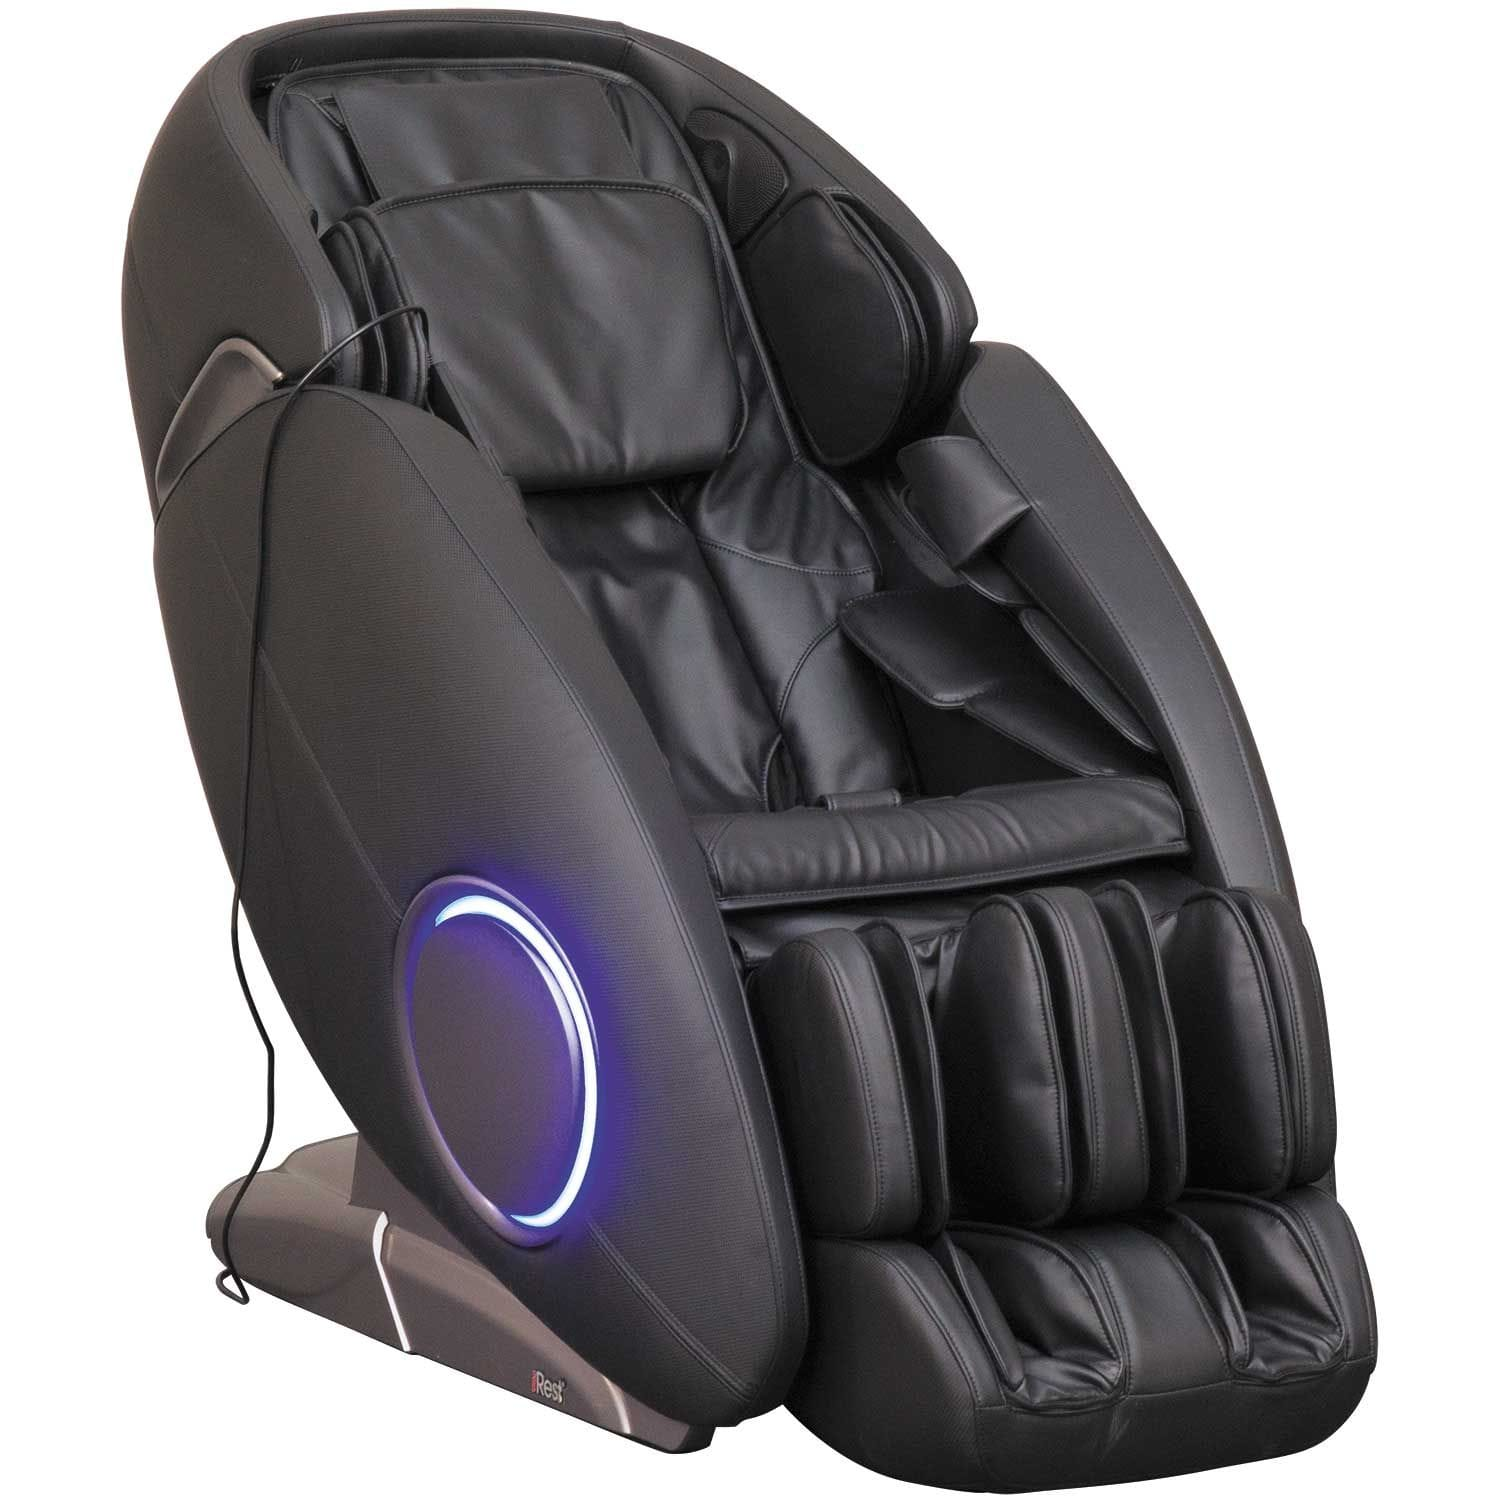 Black Massage Chair with Bluetooth Technology